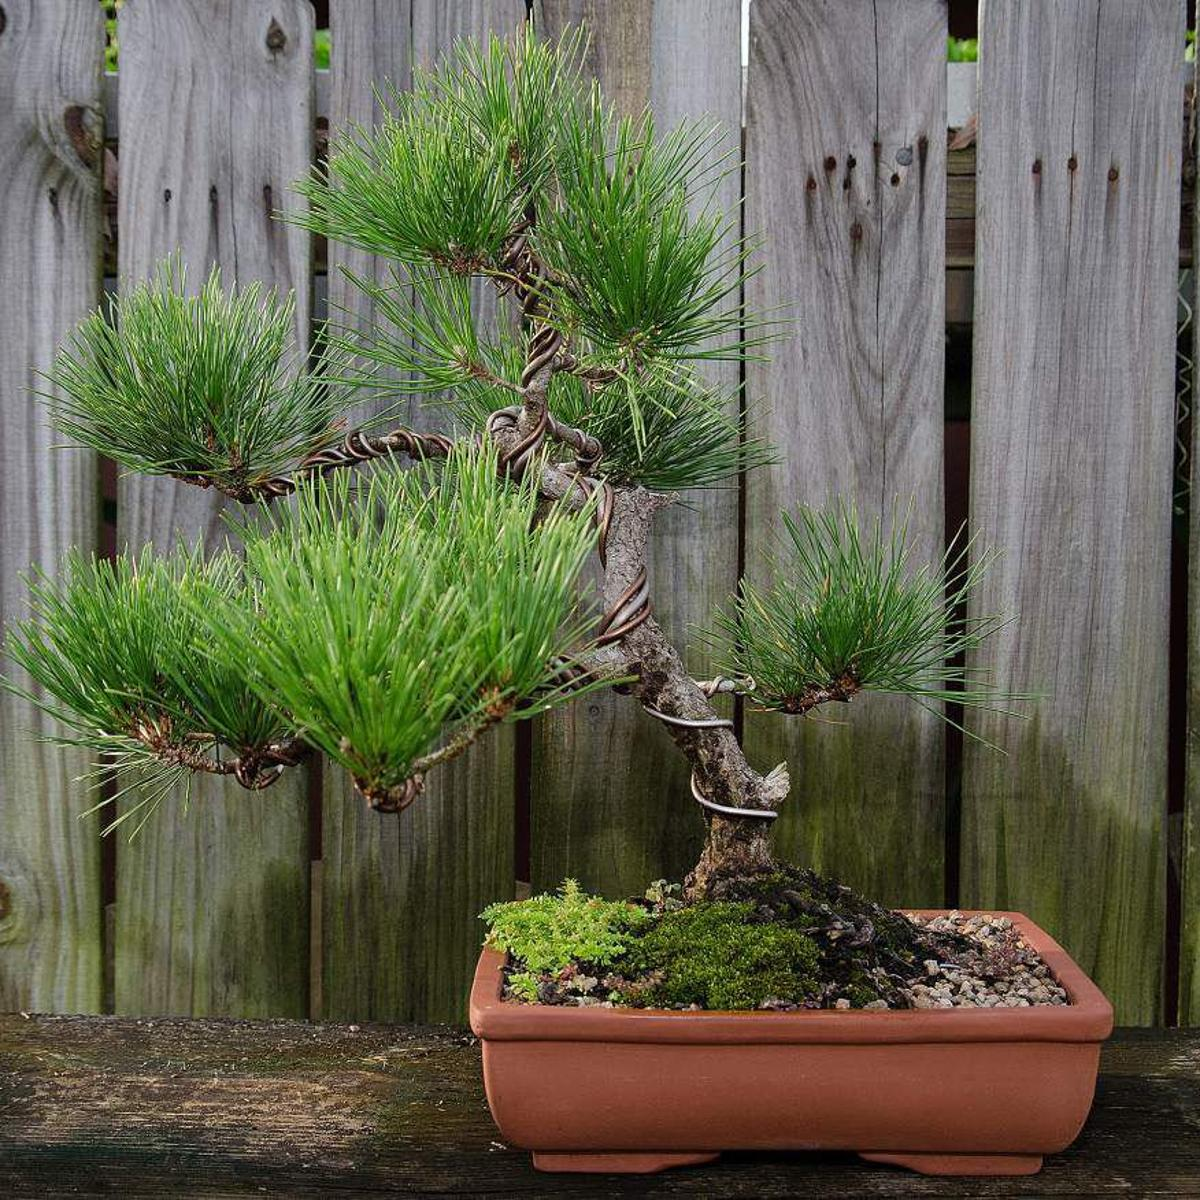 Bonsai Society Set To Auction Off Tiny Trained Trees Home Garden Nola Com